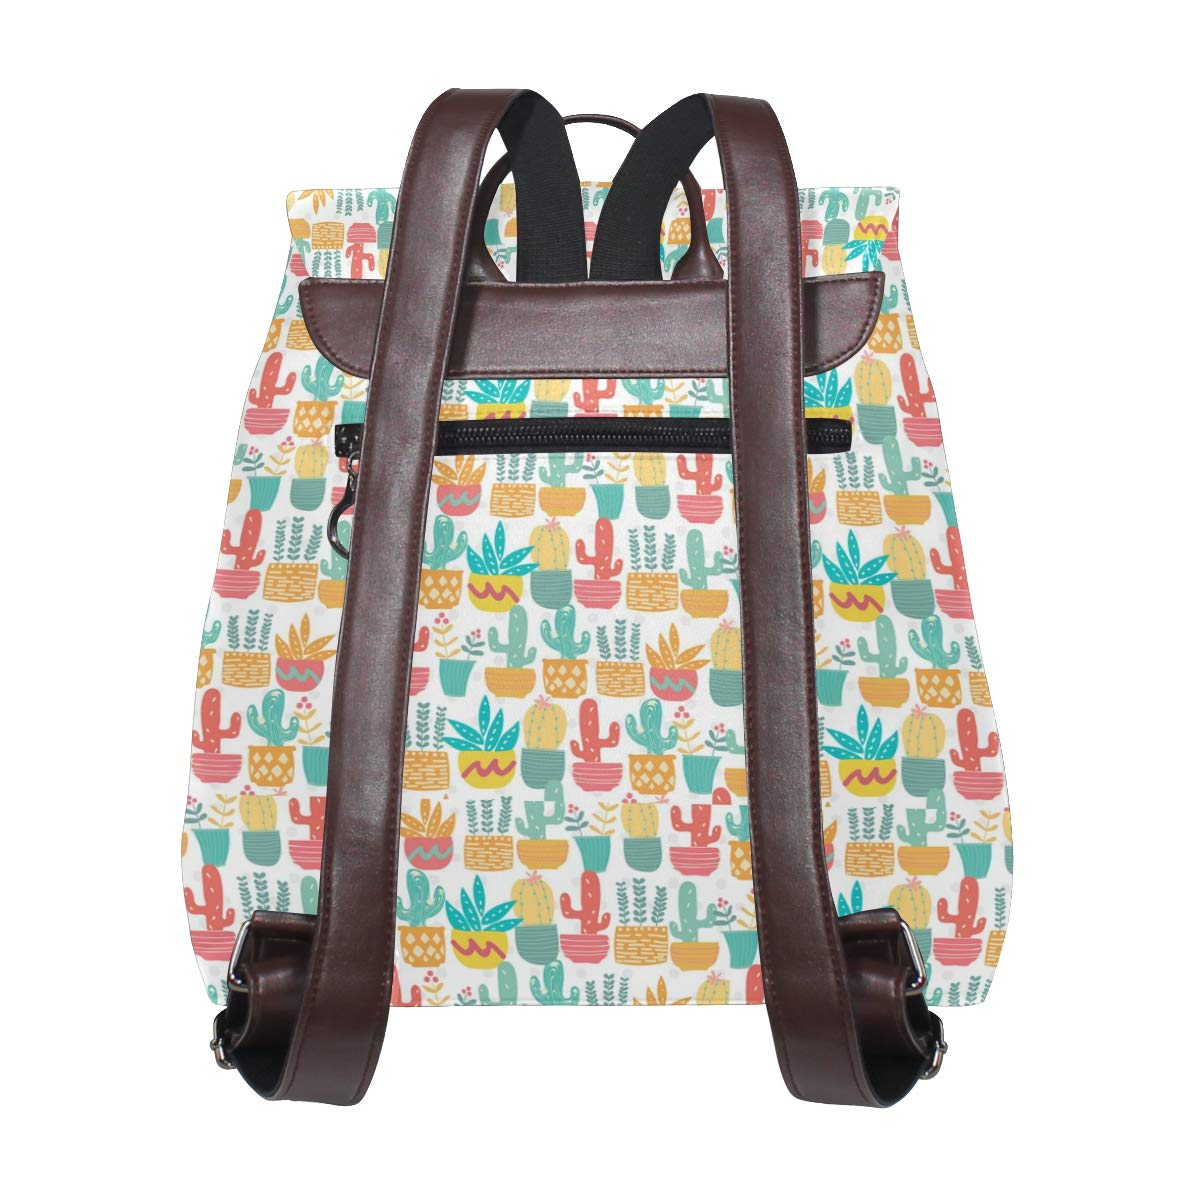 Leather Cute Pastel Cactus Backpack Daypack Bag Women